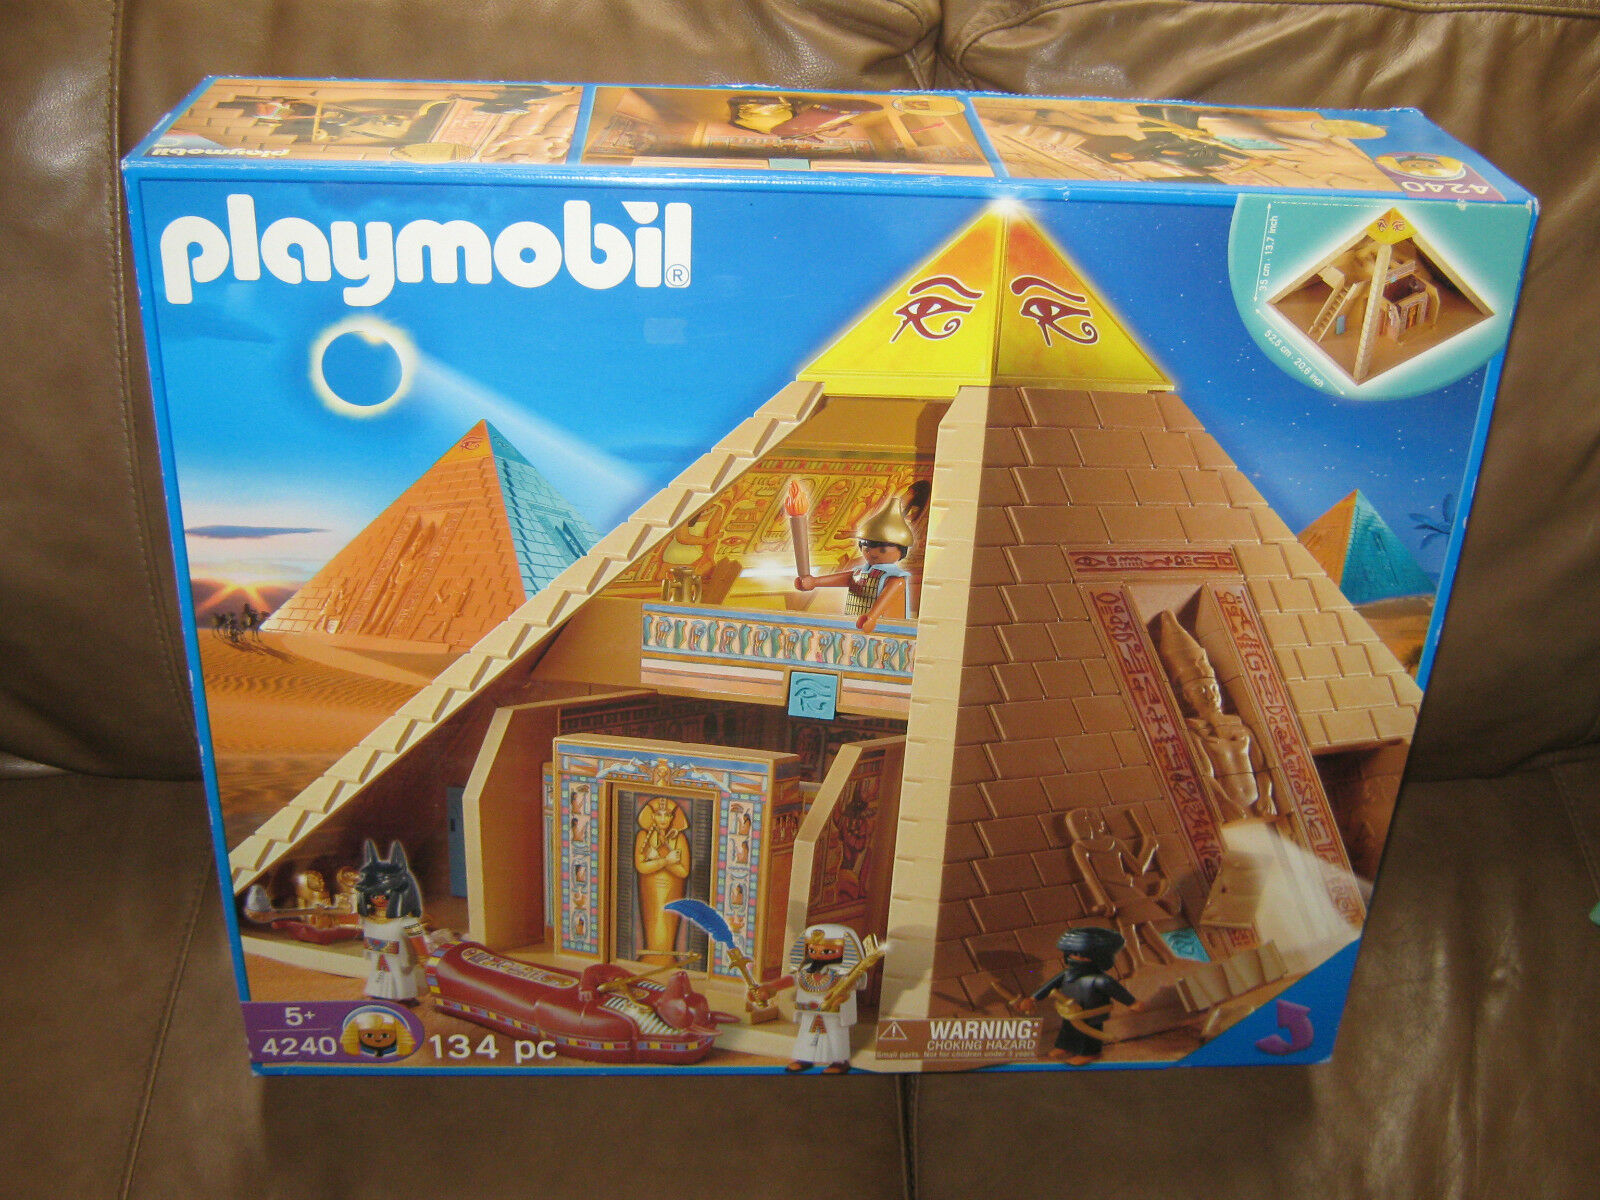 Playmobil 4240 Egyptian Pyramid Large Set Still sealed in the box